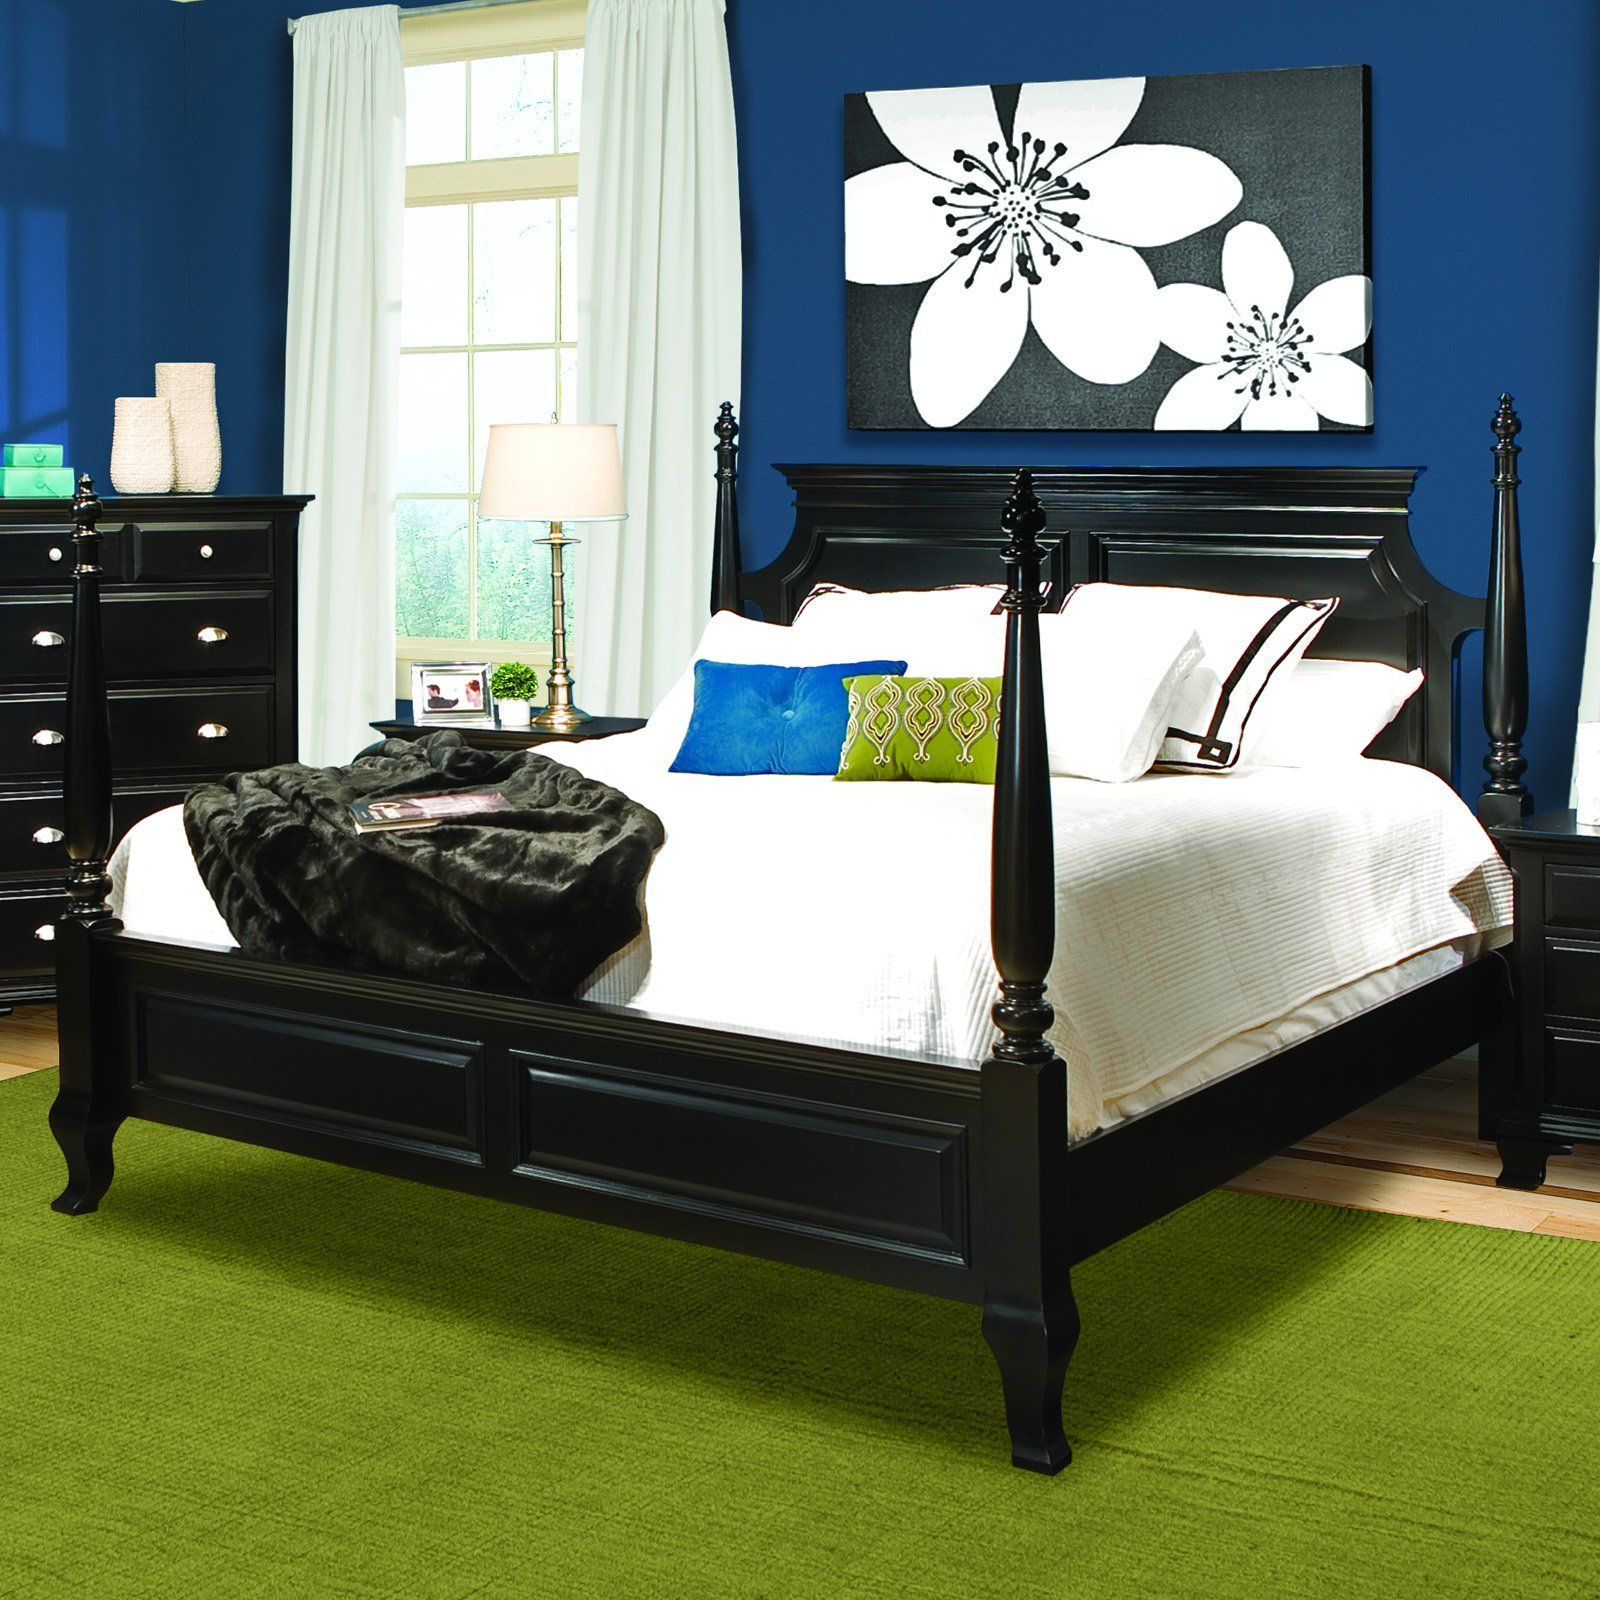 Chelsea Ebony Black Panel Bed 680.00 Bed with raised